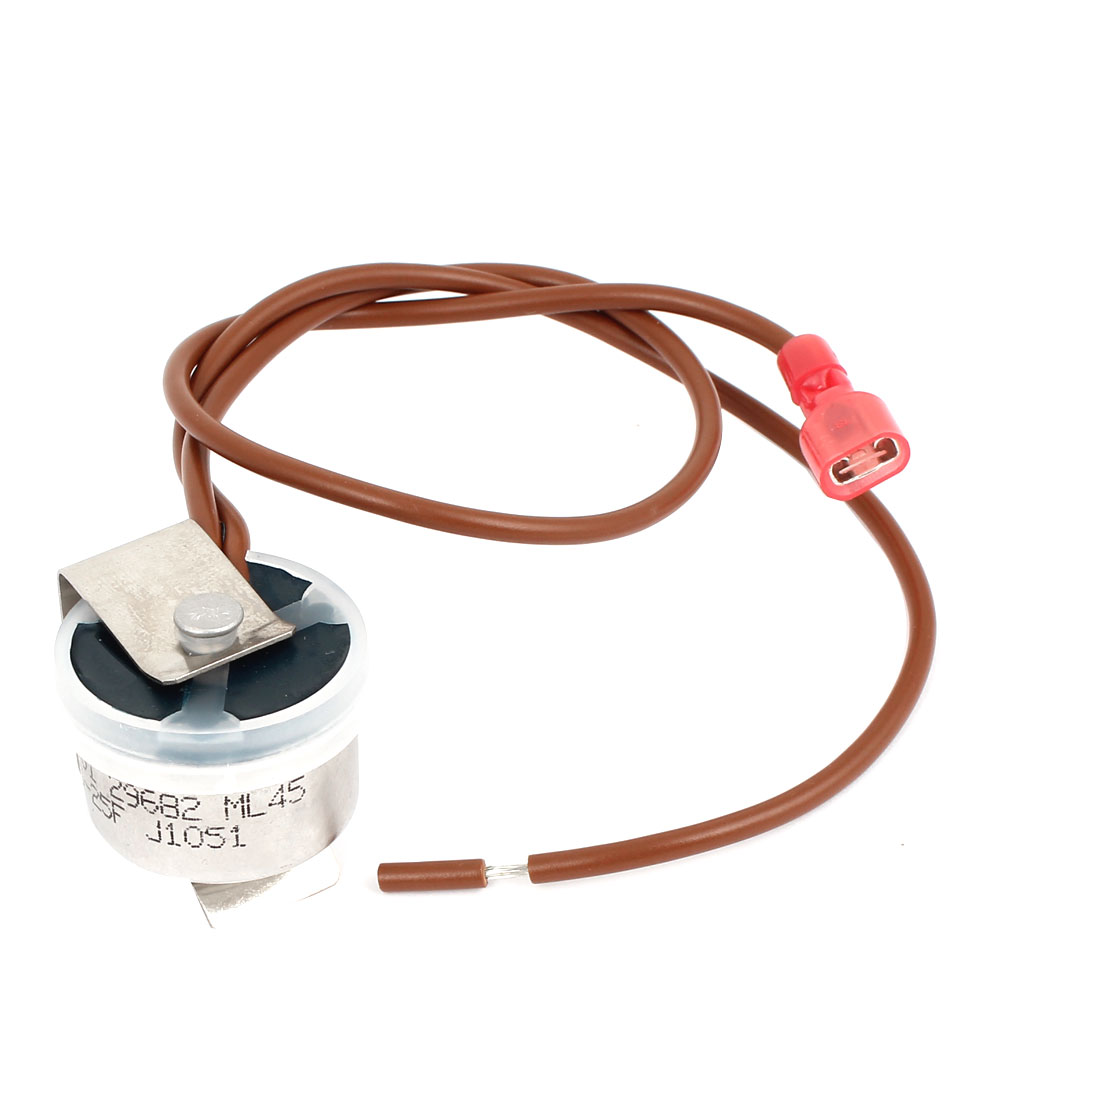 ML45 37T01 L45-25F 30cm Length Cable Defrost Thermostat for Refrigerator Fridge